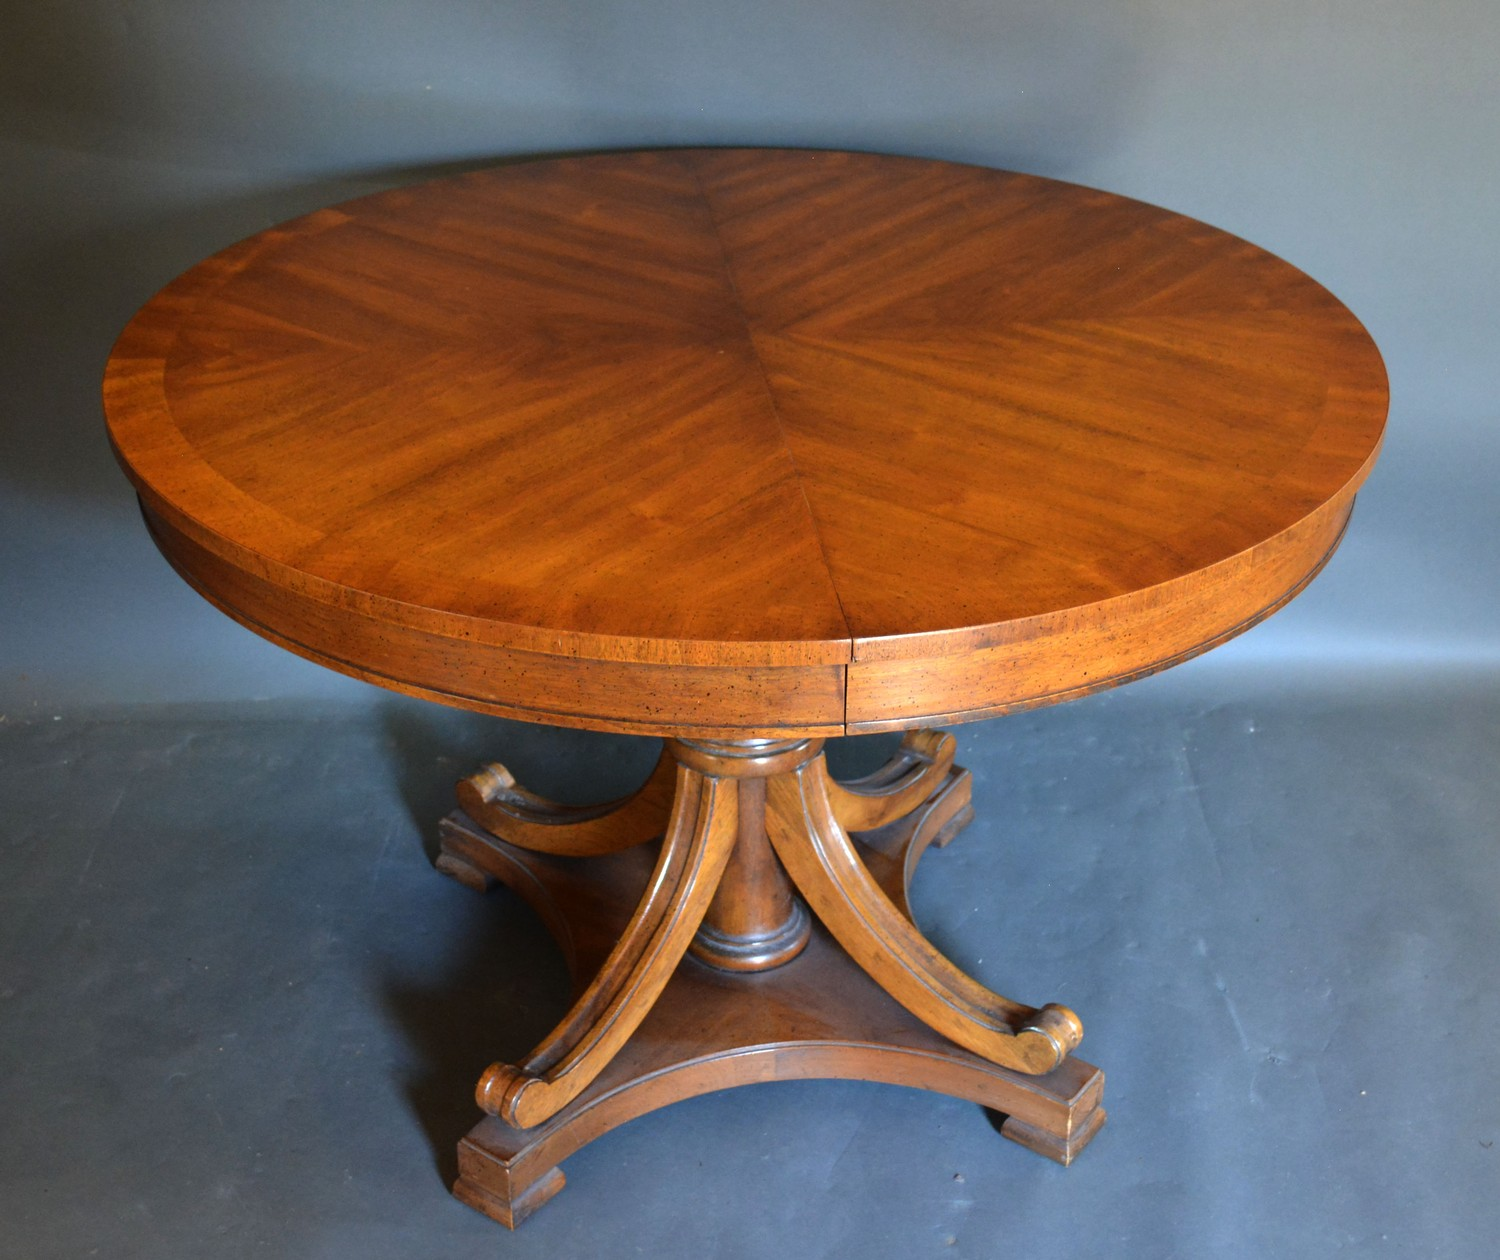 A 20th century circular centre table with turned centre column and outset legs, 113cms diameter,